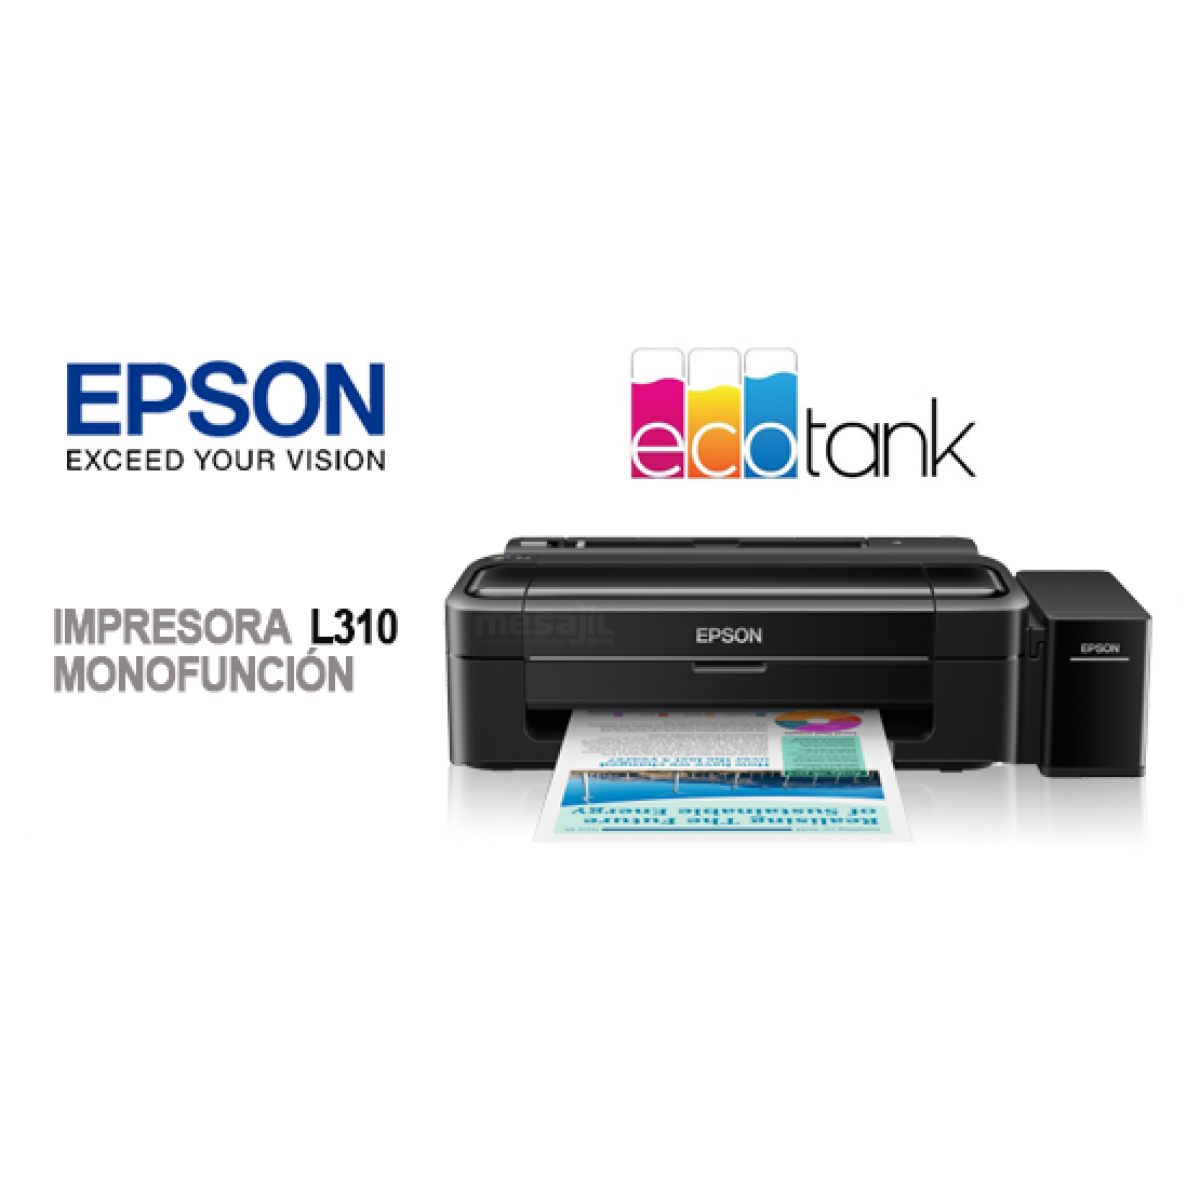 Promo Harga Chipless Epson Workforce Wf7110 Printer And Continuous